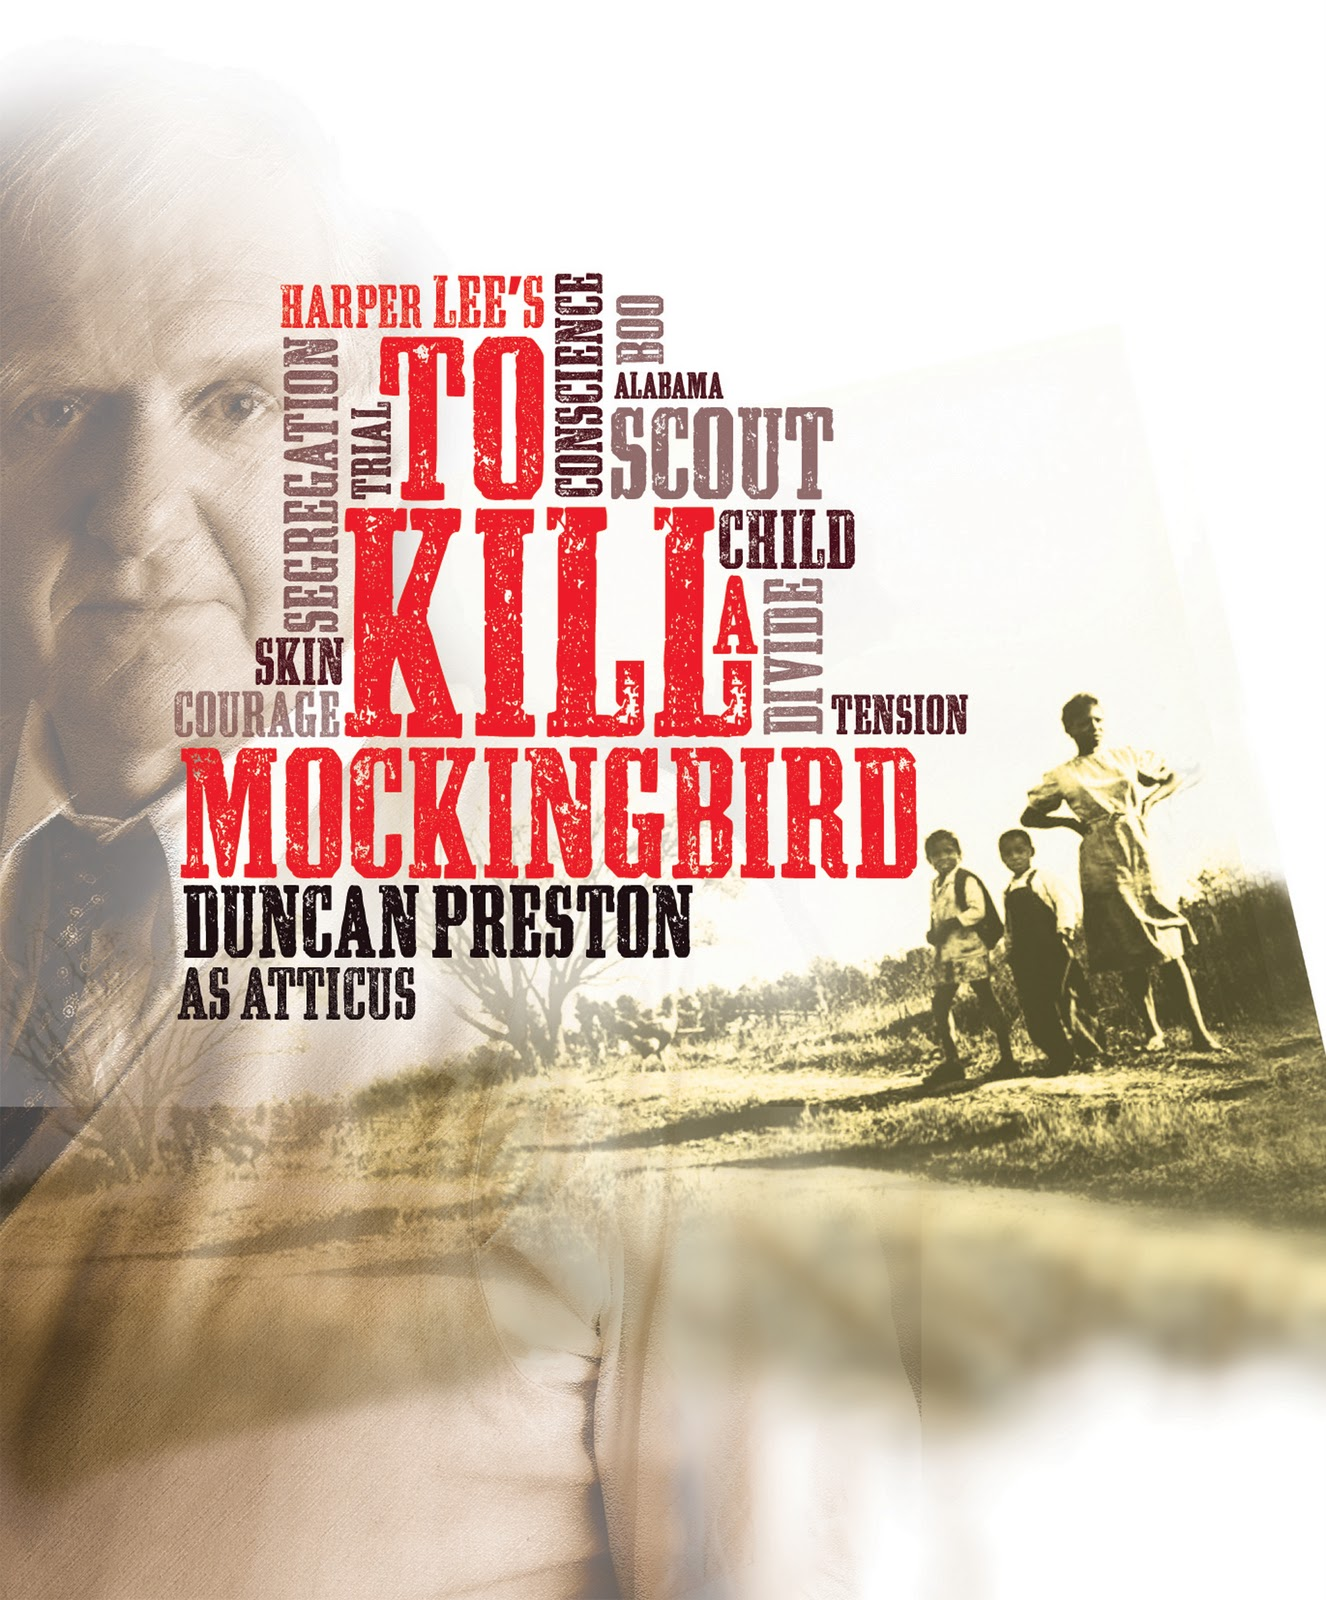 to kill a mockingbird reflection At the time lee wrote to kill a mockingbird, white people had control over the communities they lived in, but many members of the elite class feared that african americans would make inroads into the white world by marrying and having children with whites thus, interracial marriage was outlawed in many states.